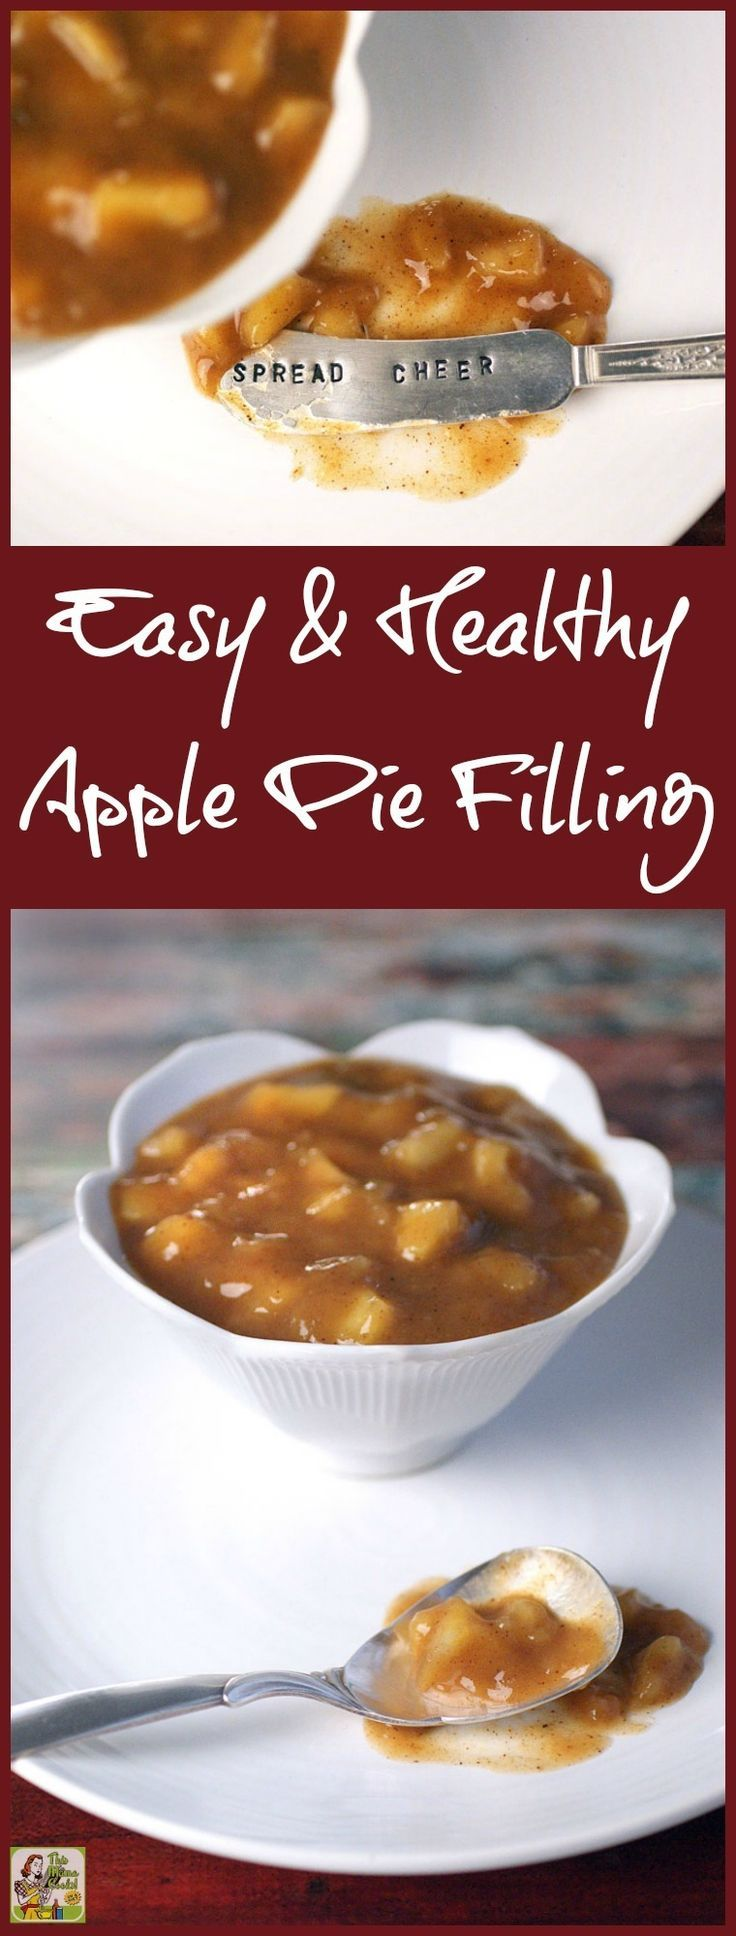 Homemade Easy & Healthy Apple Pie Filling is easier to make than you think! It's also gluten free and cheaper to make than buying canned apple pie filling at the store. Double or triple a batch and freeze to use in all sorts of apple pie dessert recipes.